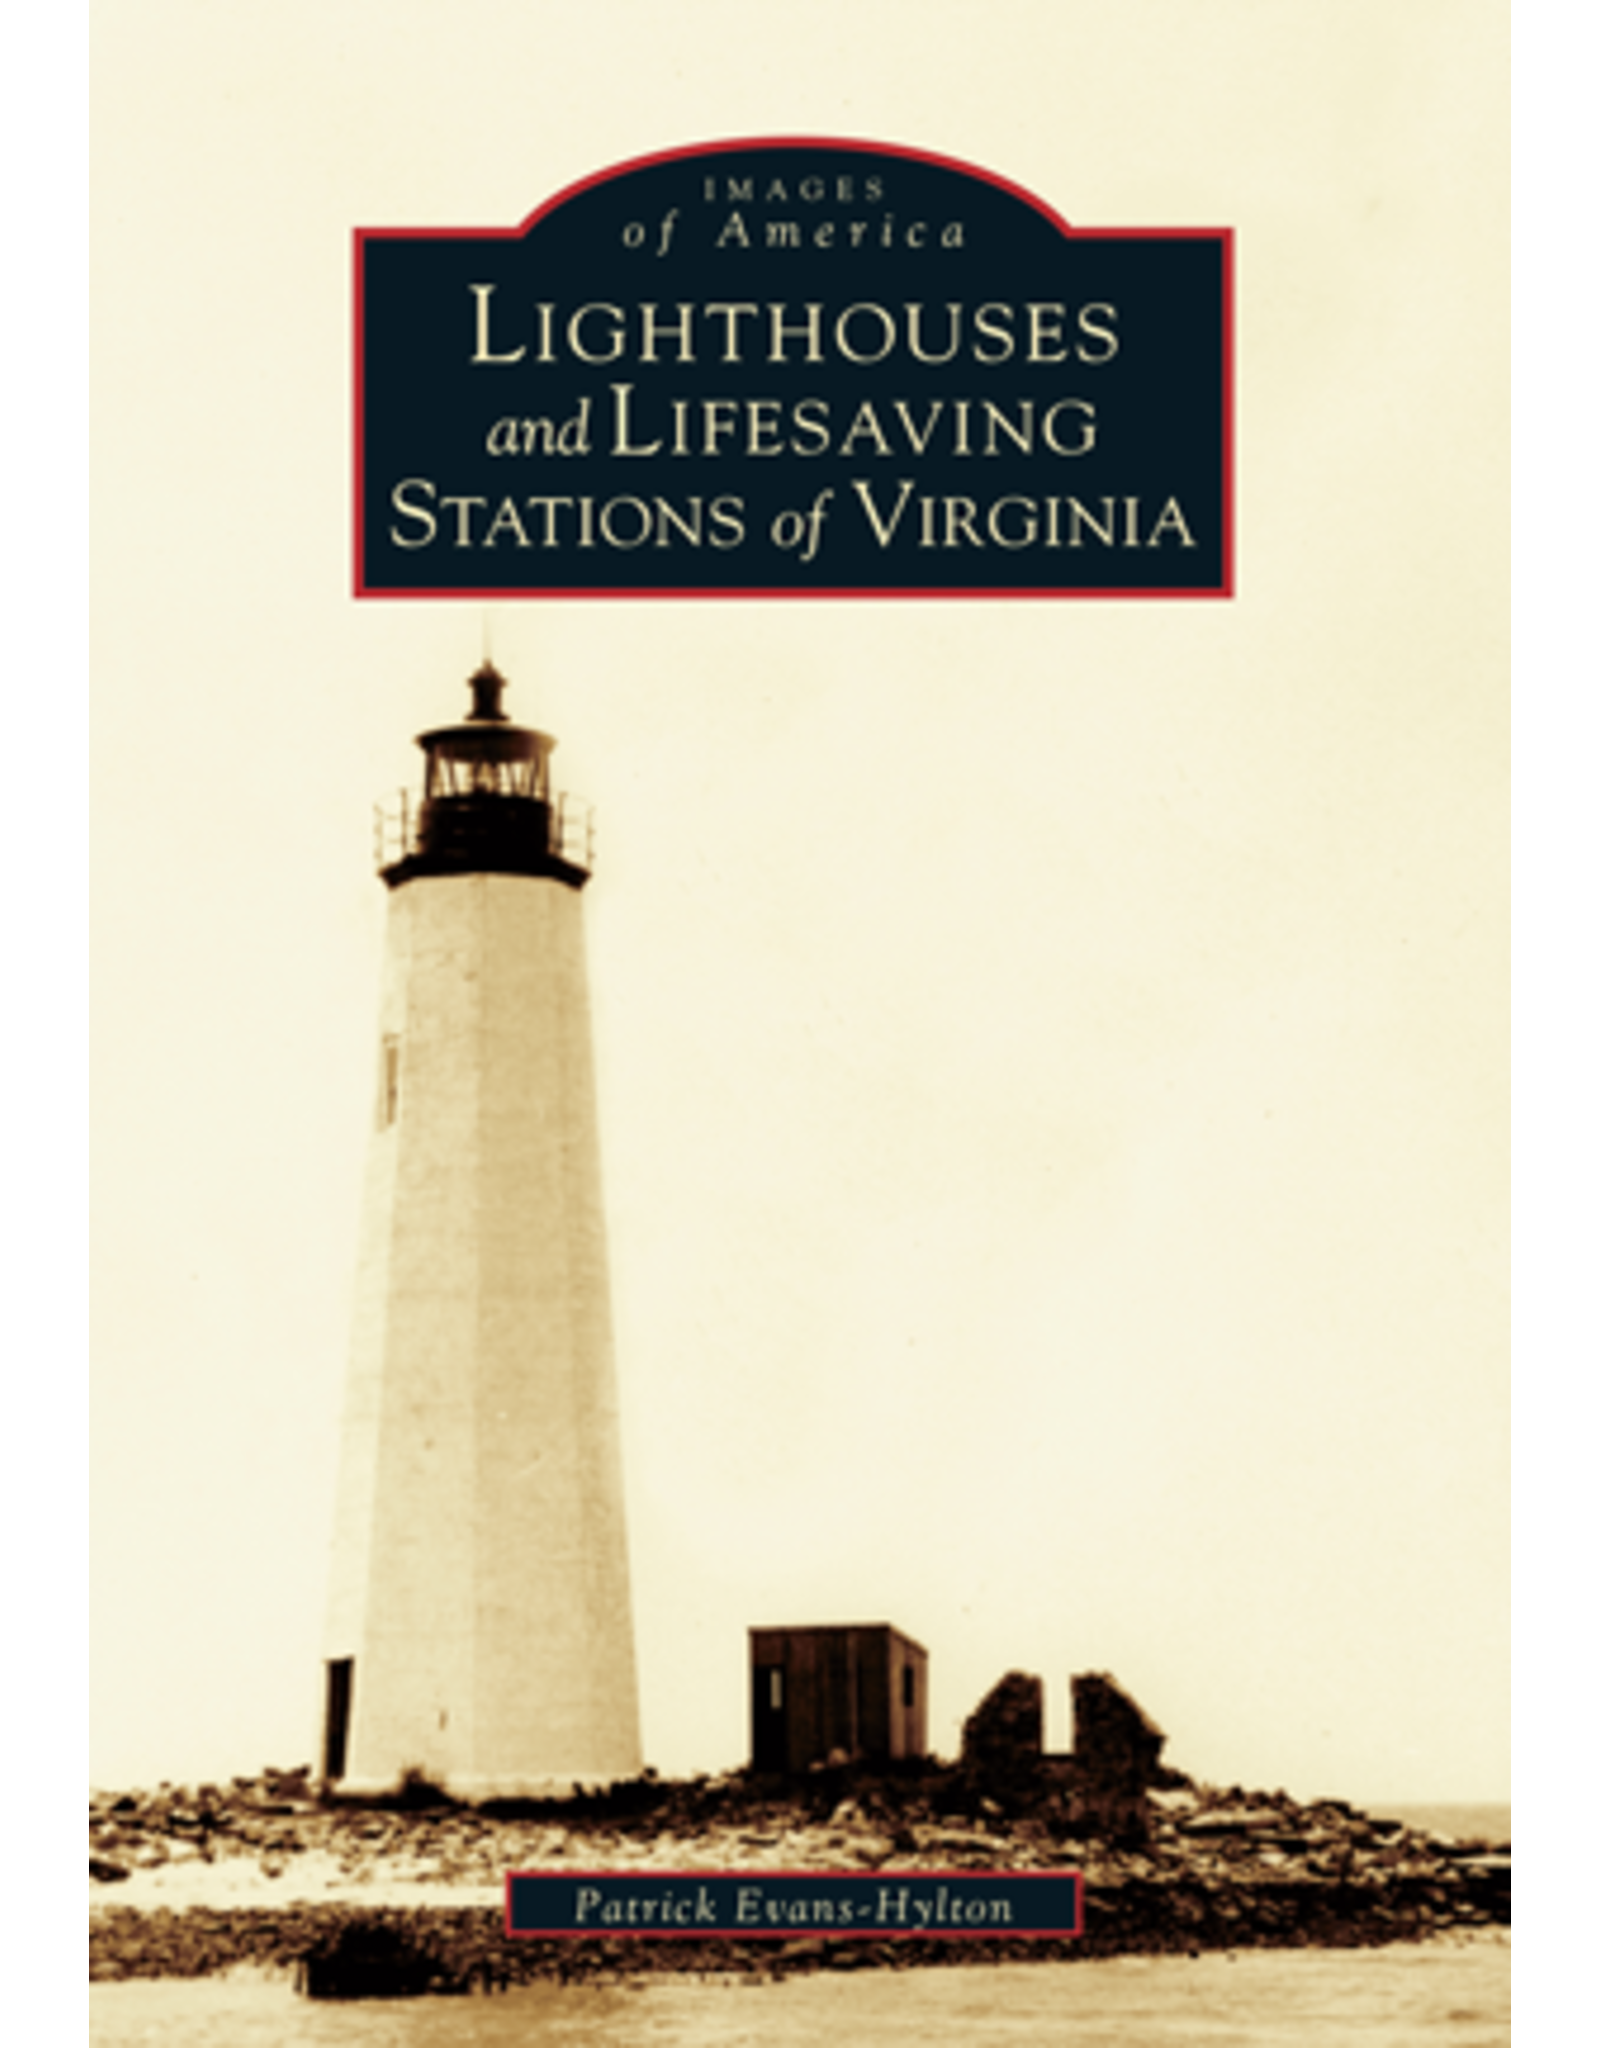 Images of America - Lighthouses & Lifesaving Stations